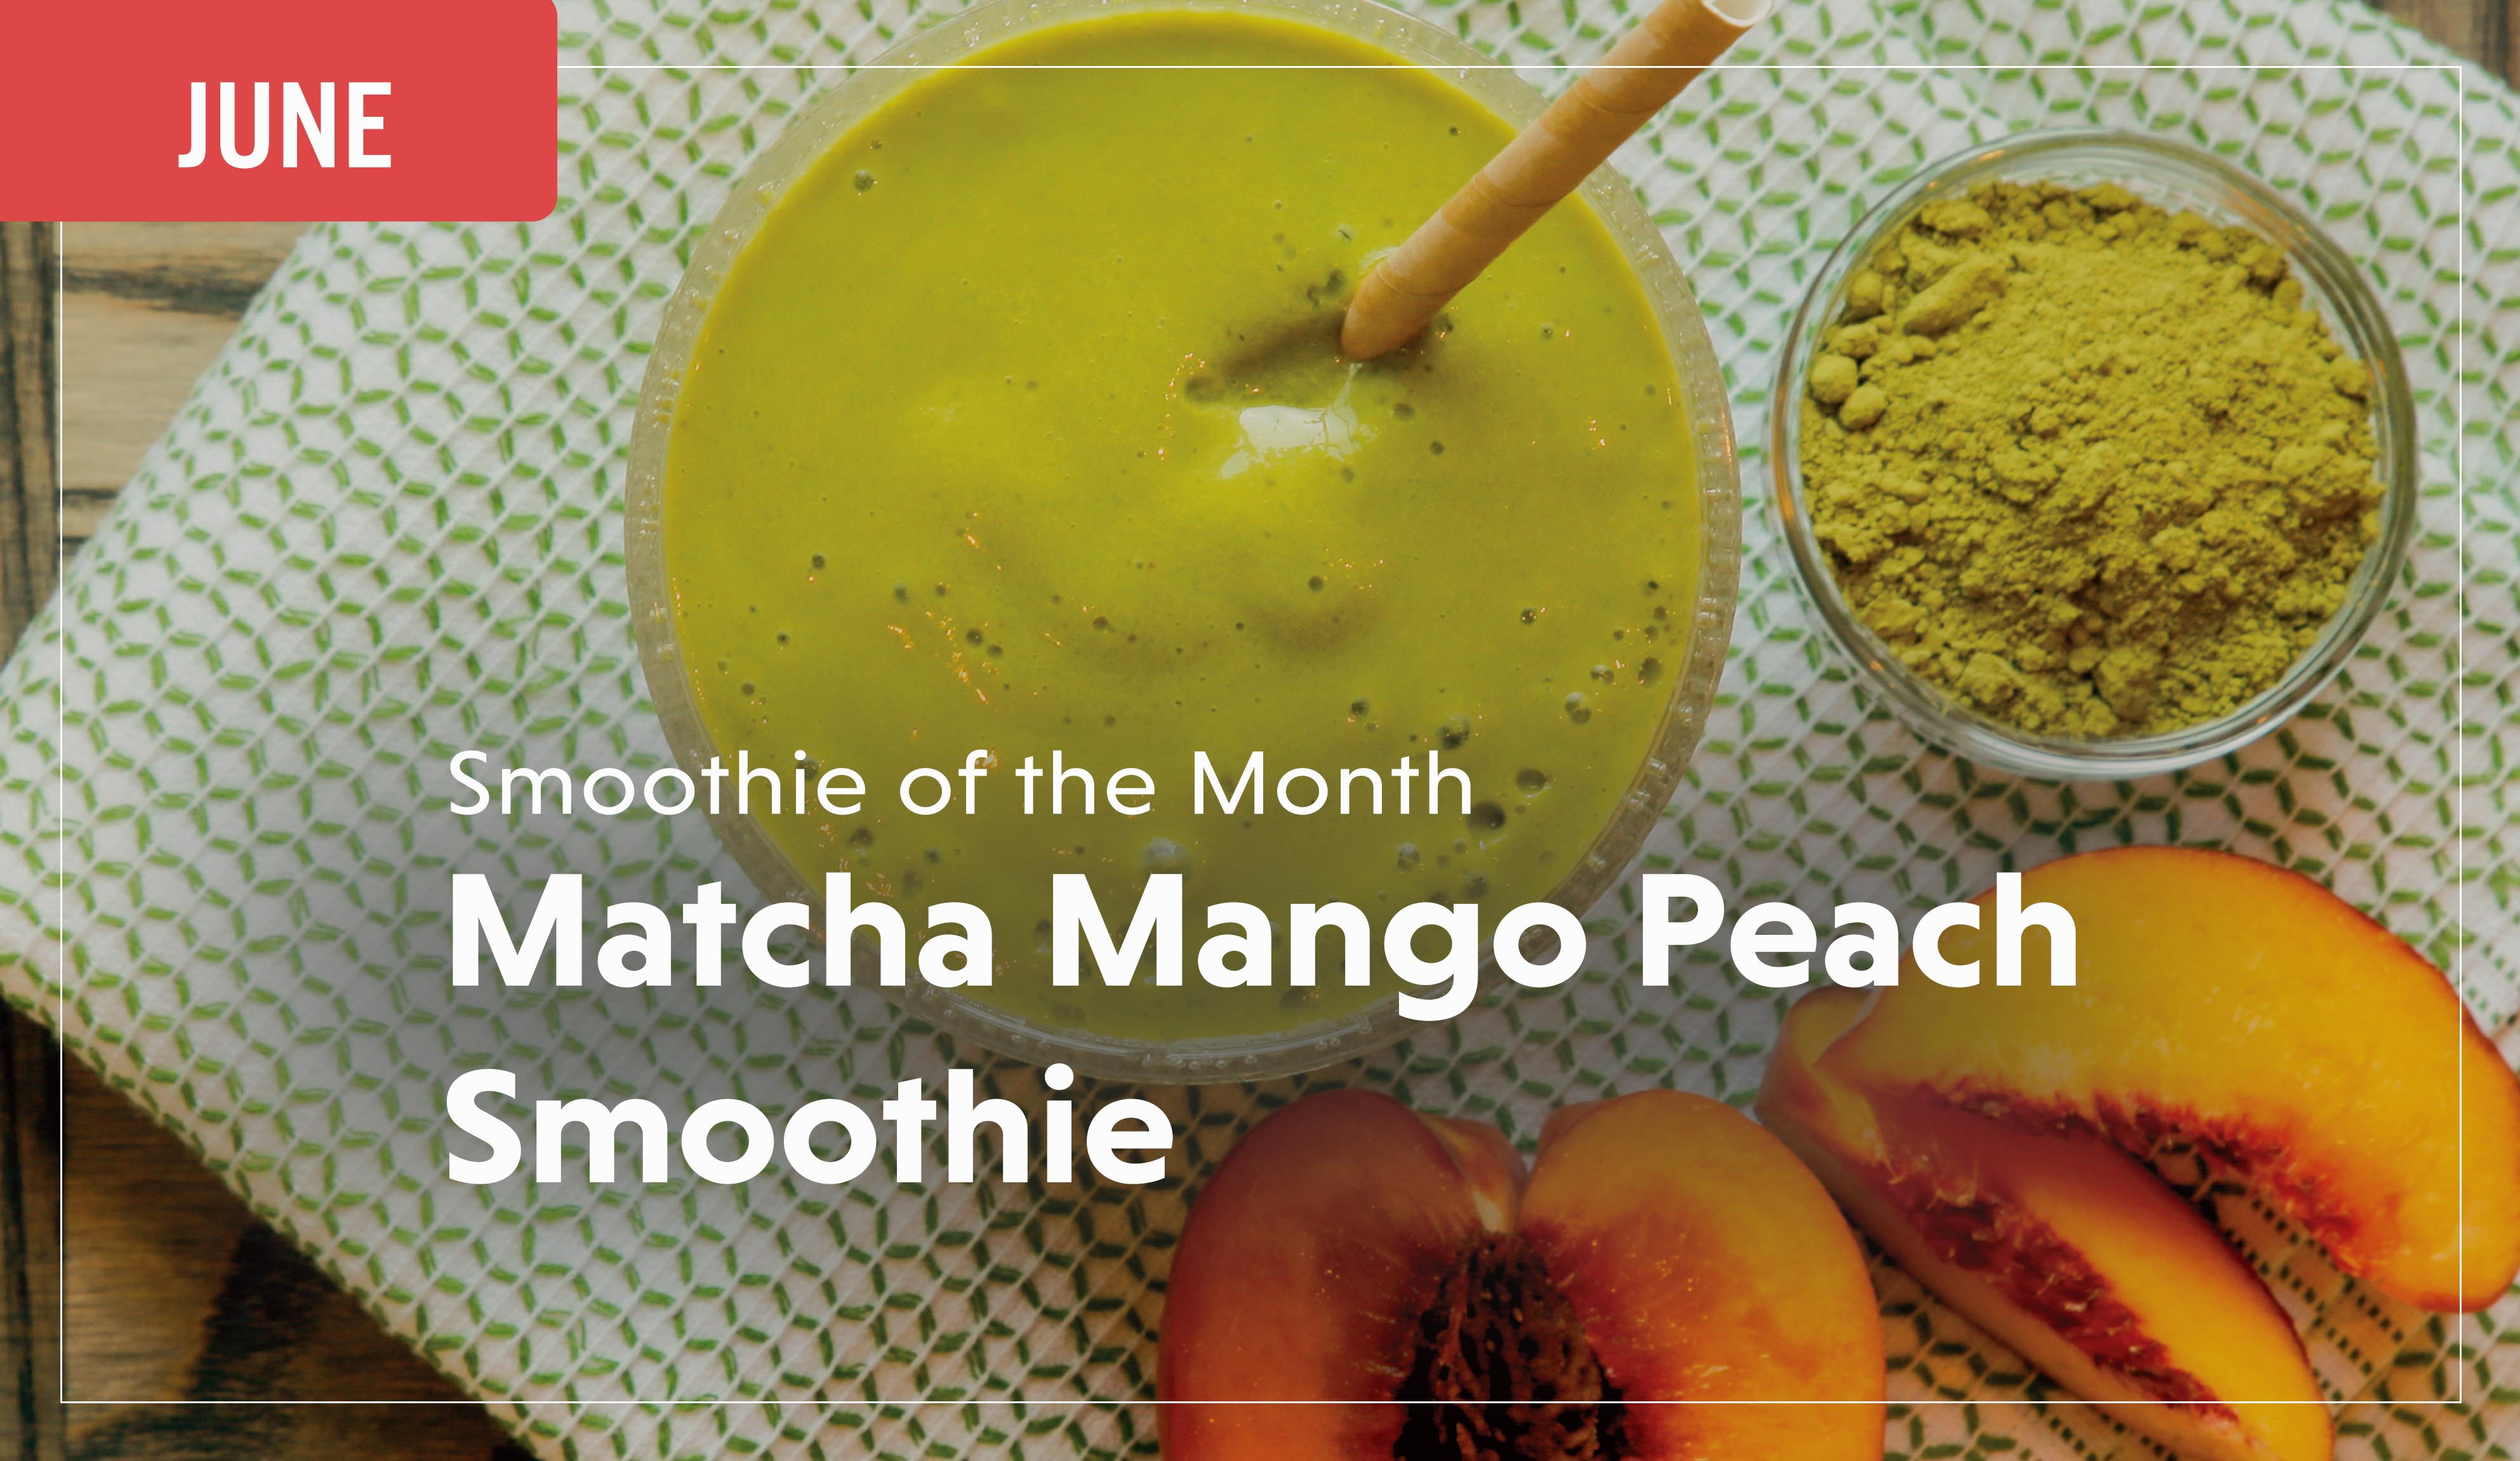 Match Mango Peach Smoothie-1